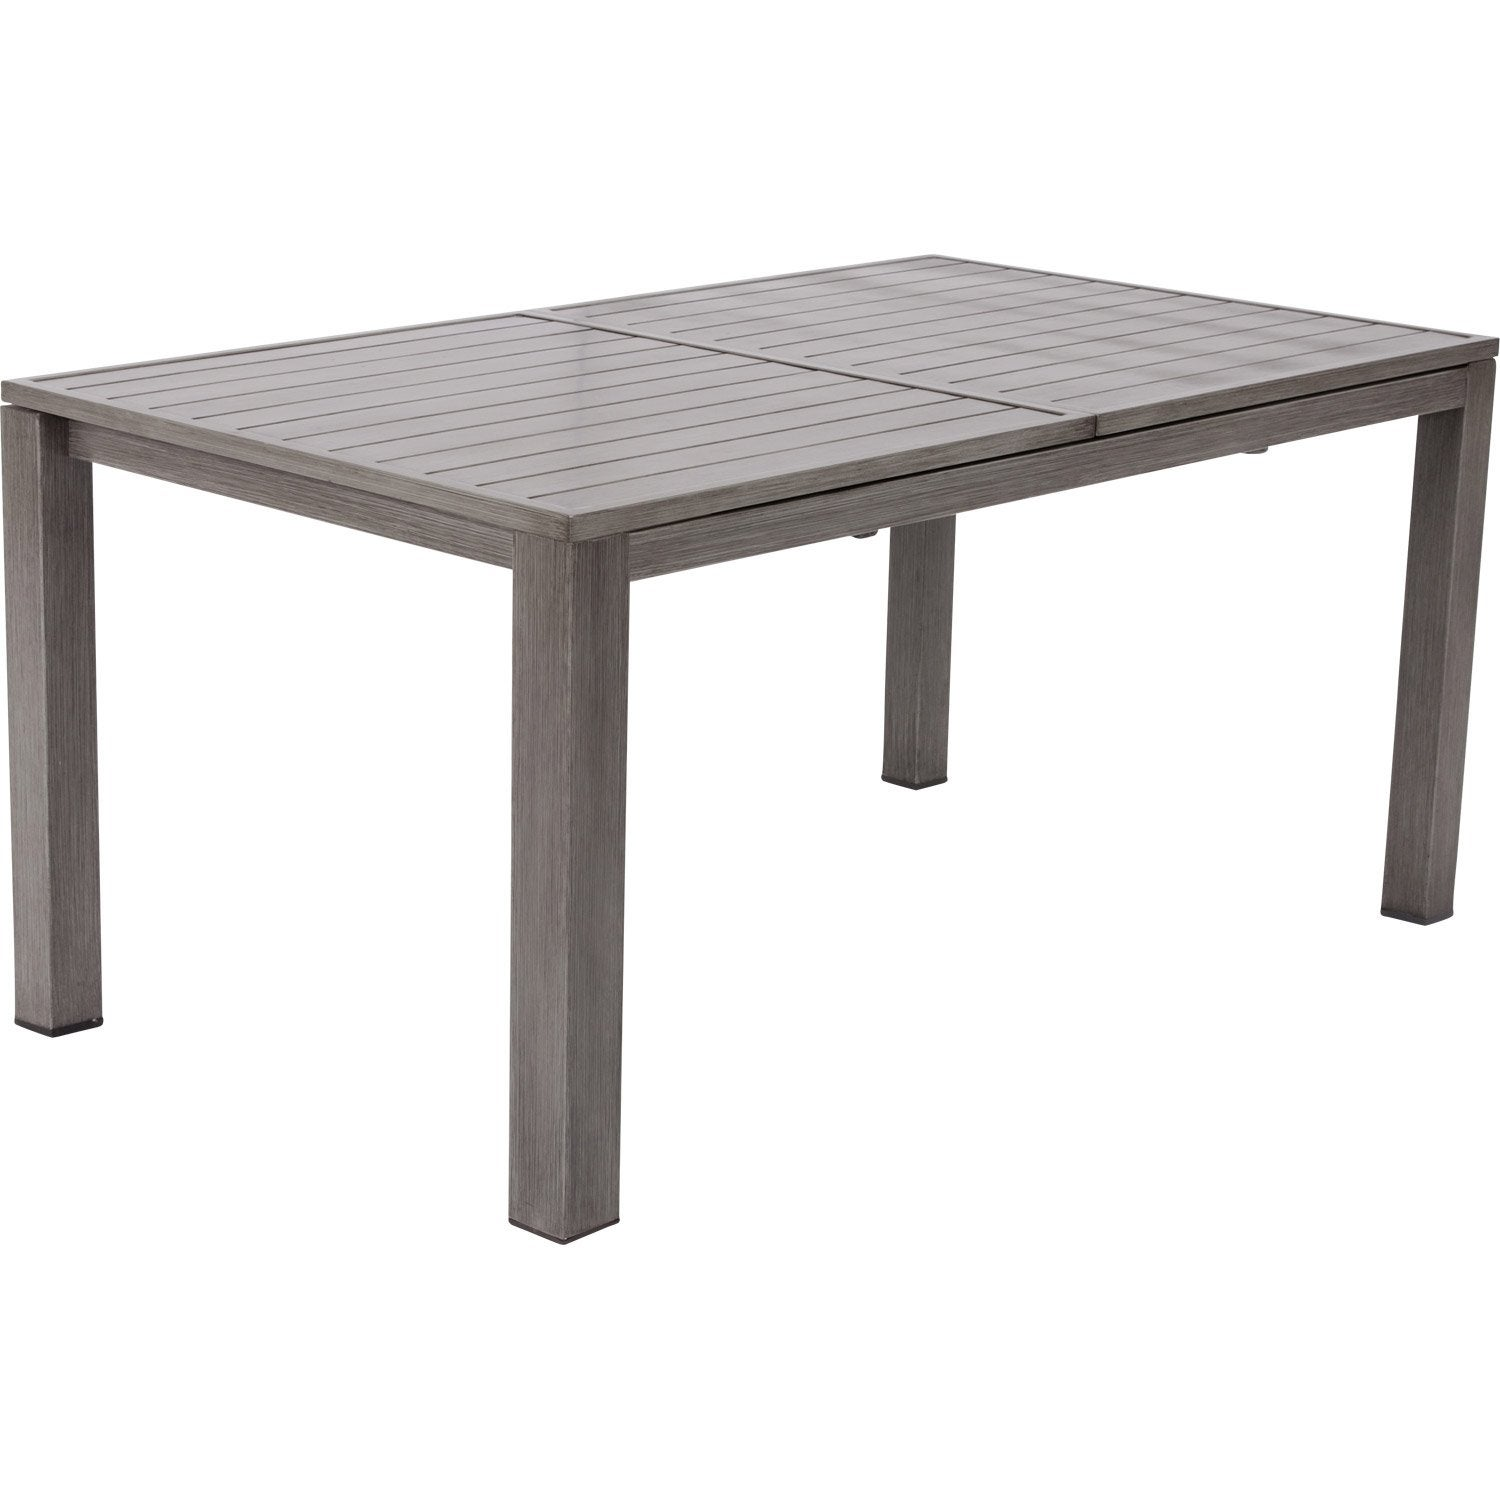 Table de jardin naterial antibes rectangulaire gris look for Table exterieur carre 8 personnes